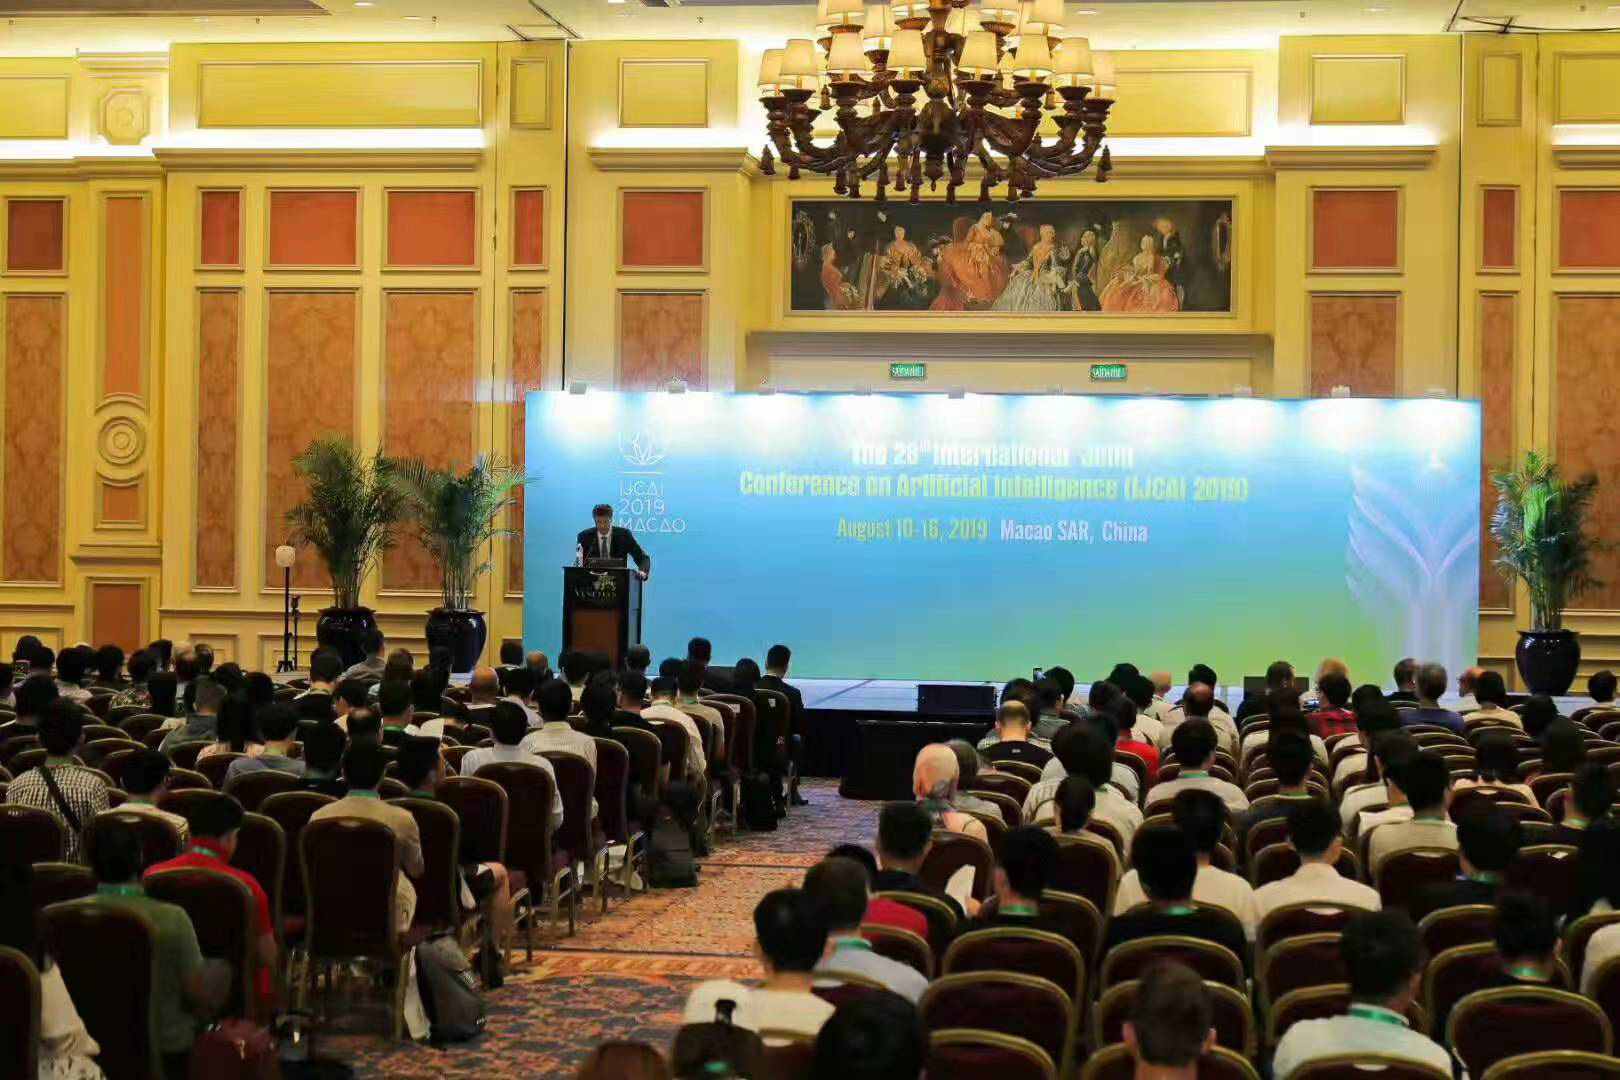 The International Joint Conference on Artificial Intelligence held in Macao